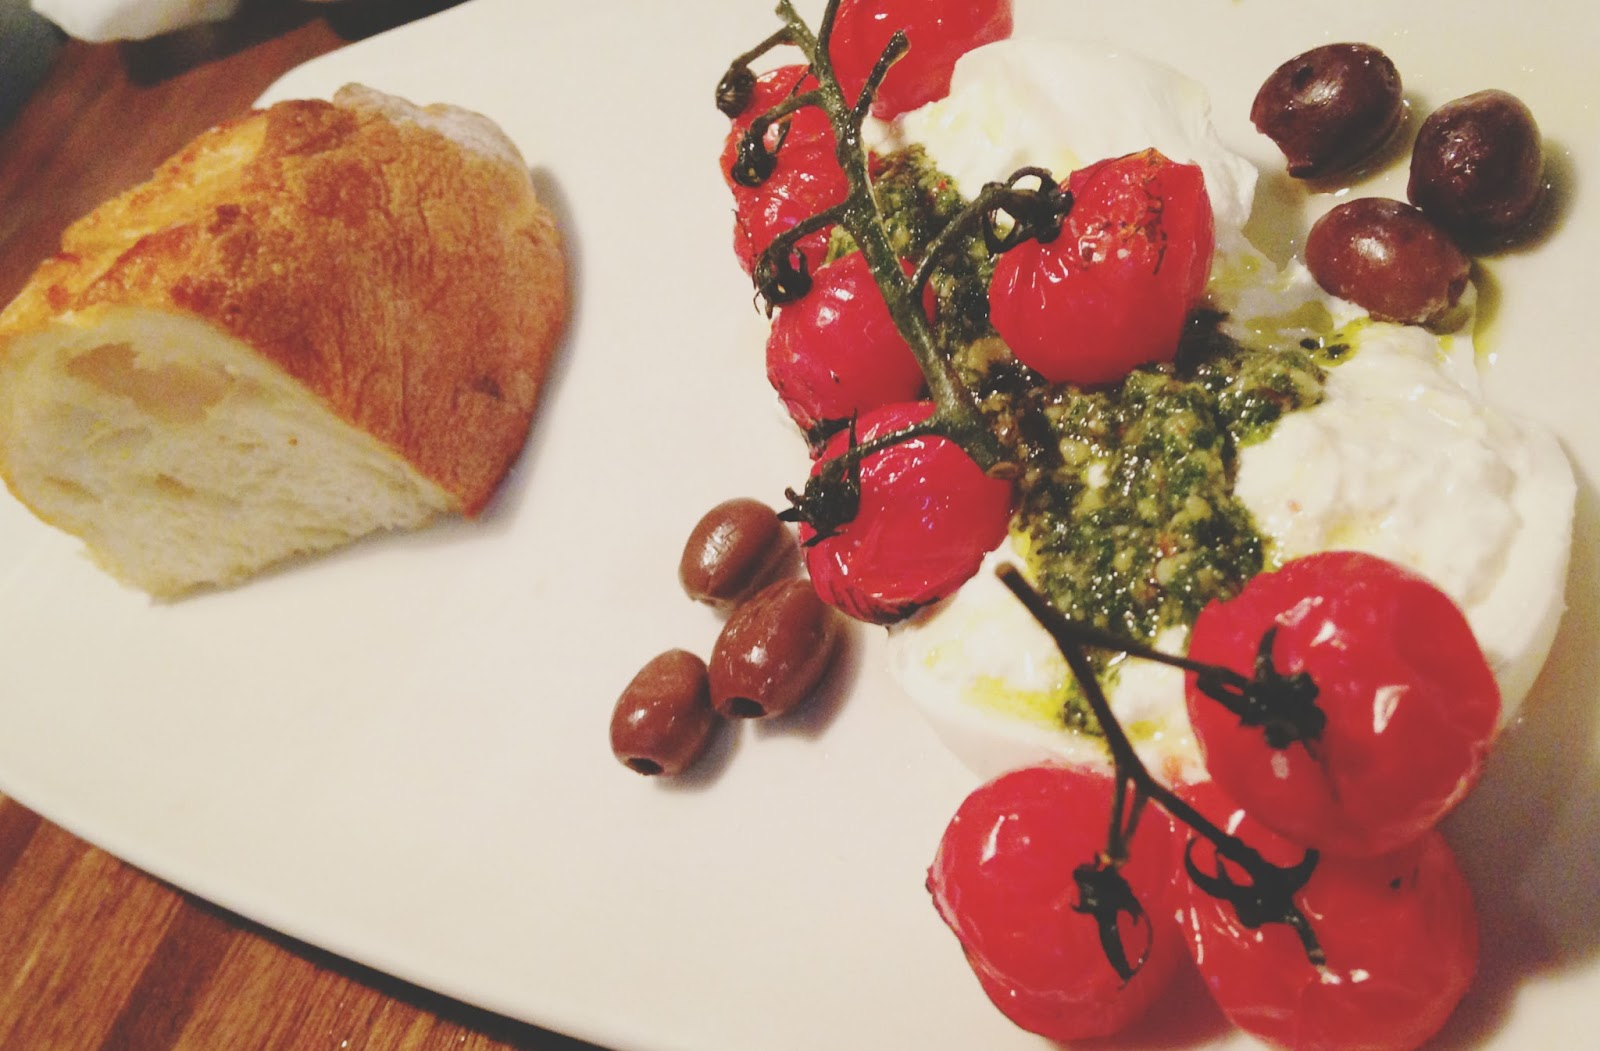 fort worth texas vacation travel food burrata